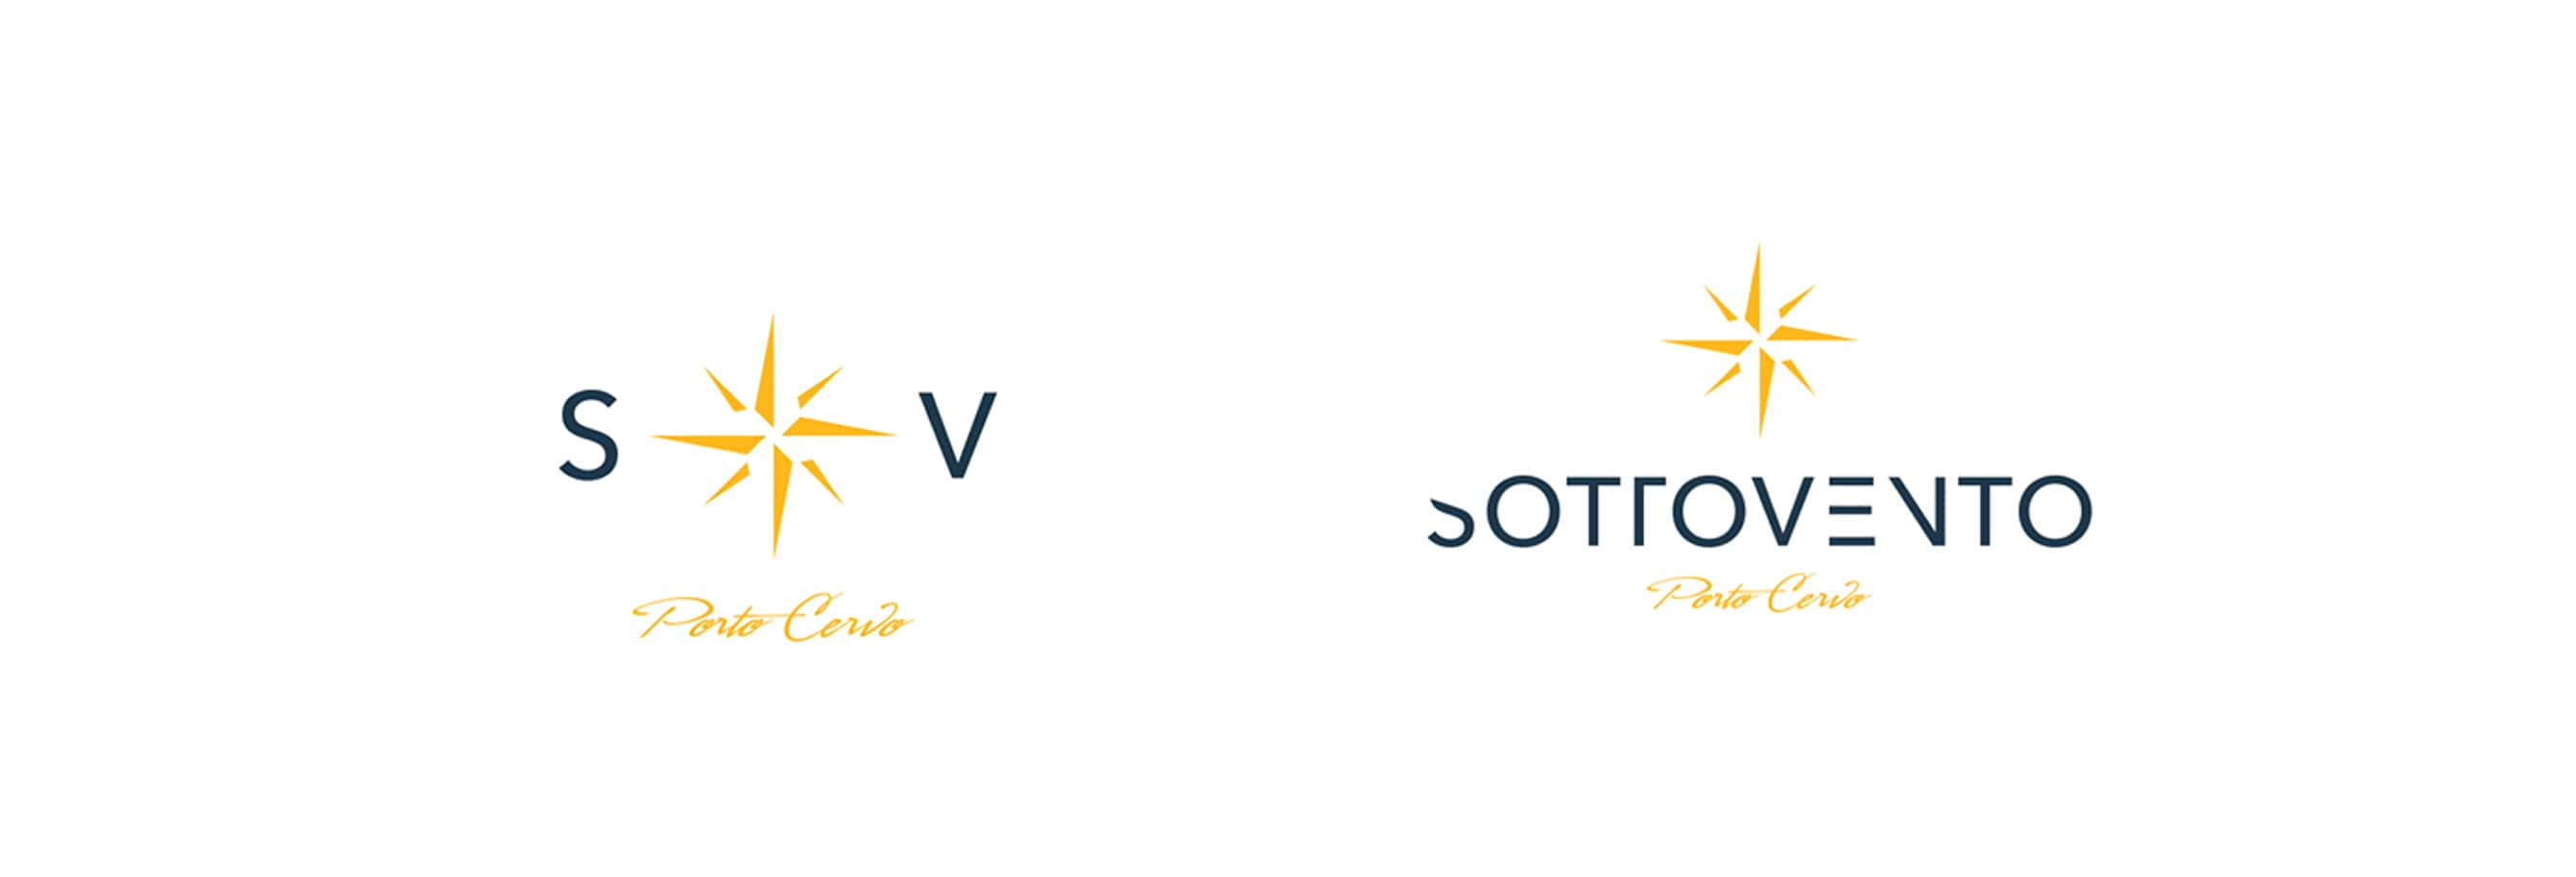 Event design and branding activities for Sottovento's event in Porto Cervo - Luther Dsgn agency